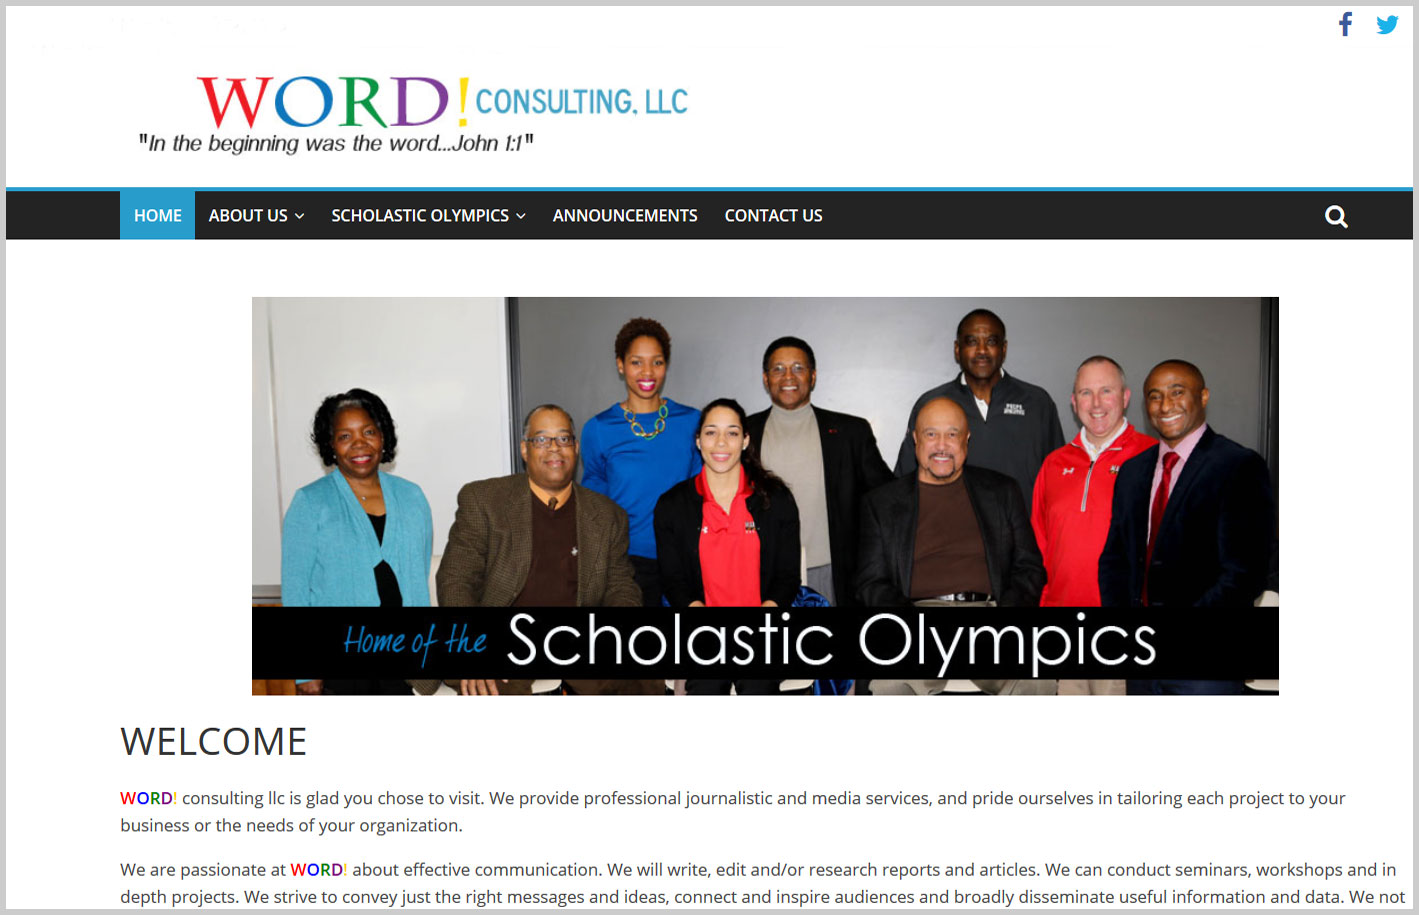 Wording Consulting, LLC